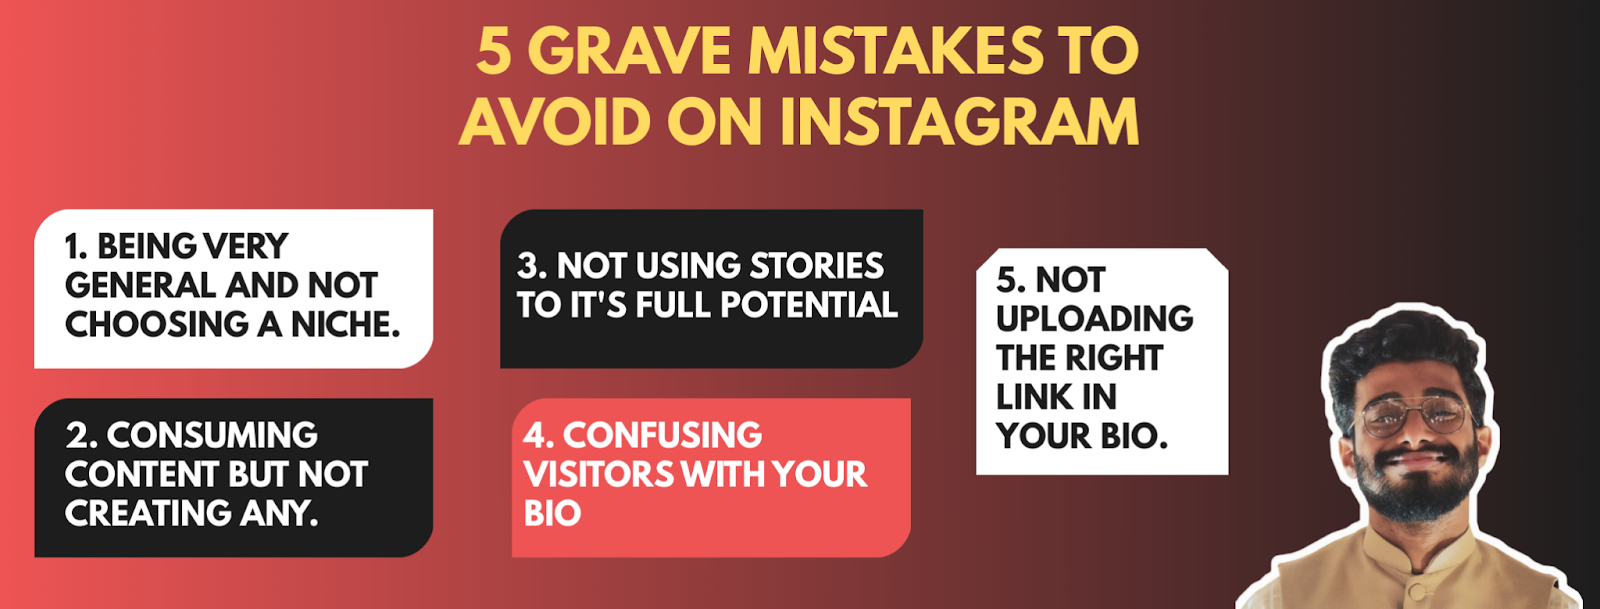 Mistakes to avoid on Instagram by Haris